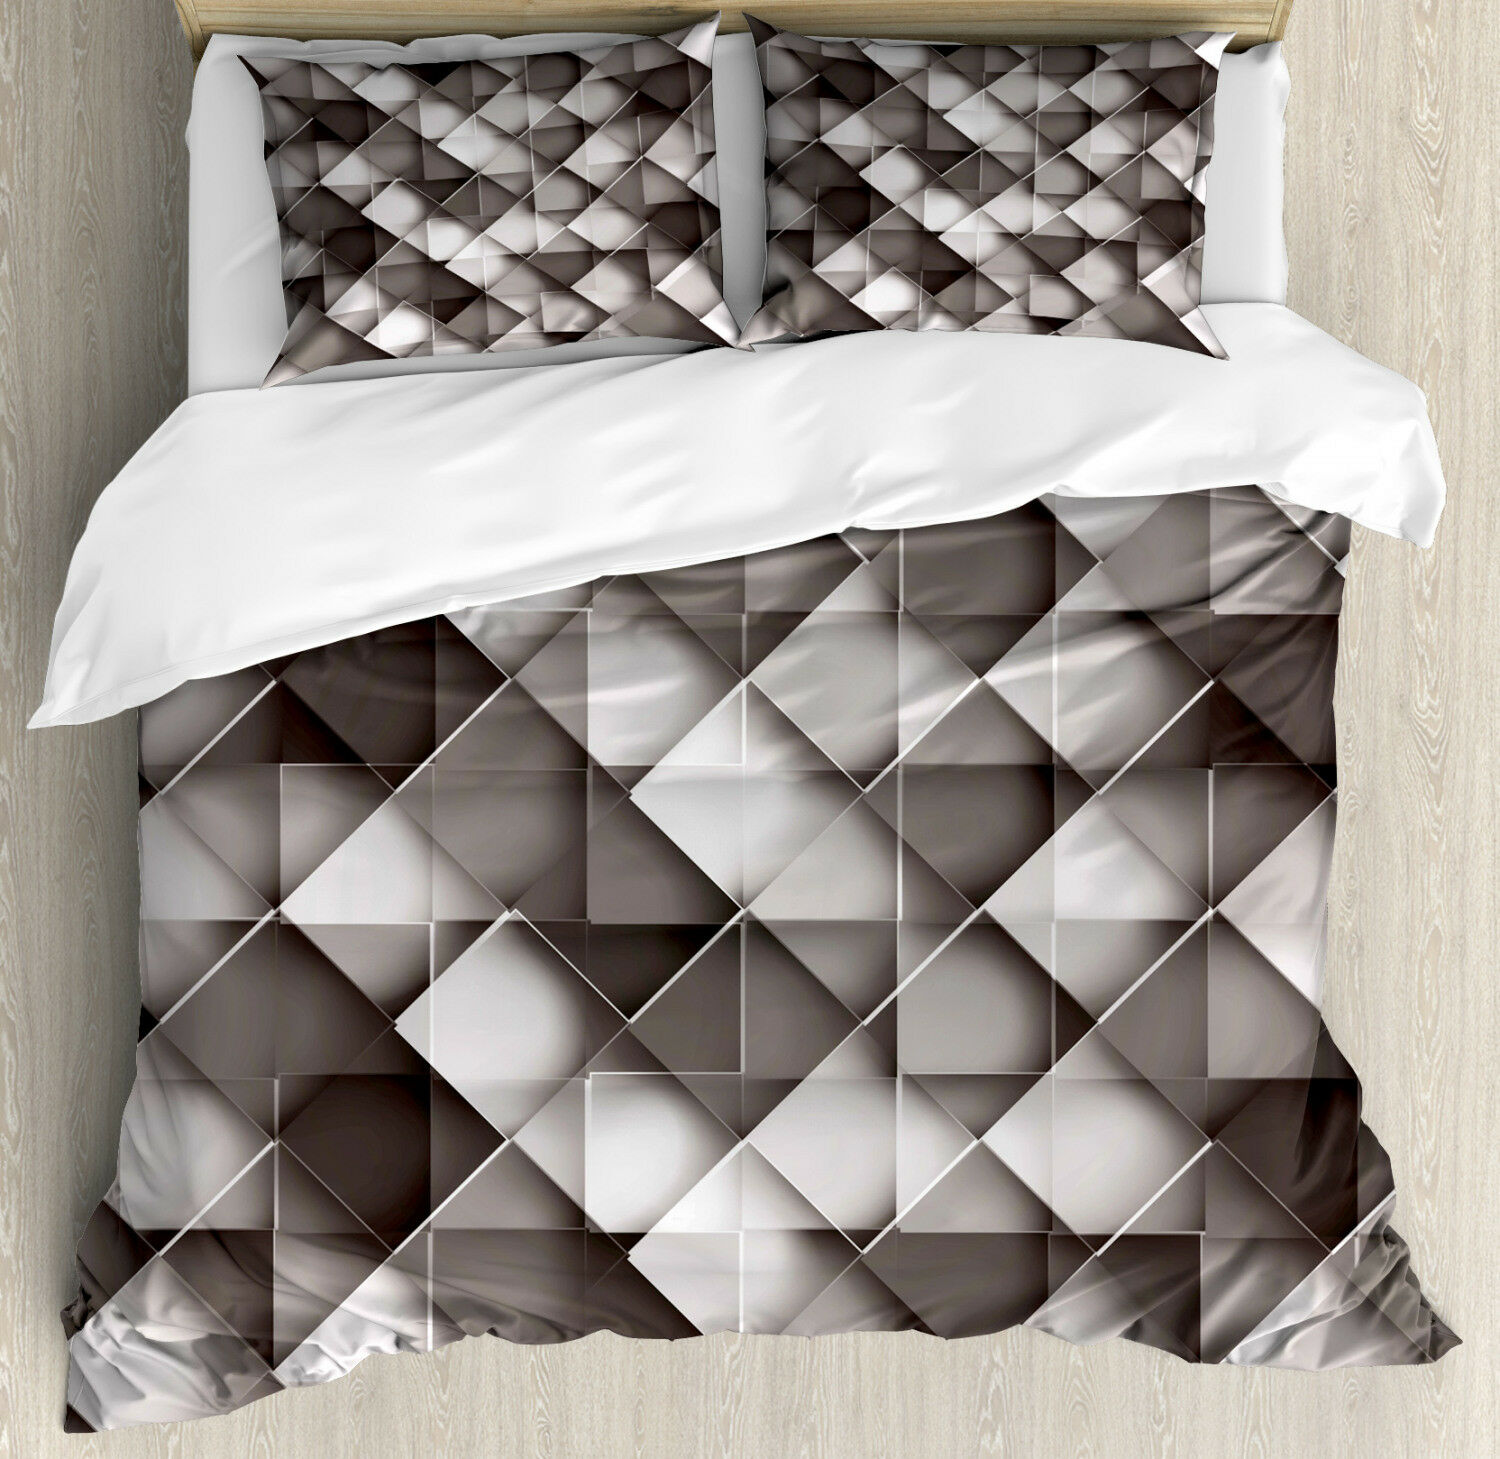 Geometric Duvet Cover Set with Pillow Shams grigio Ombre Squares Print